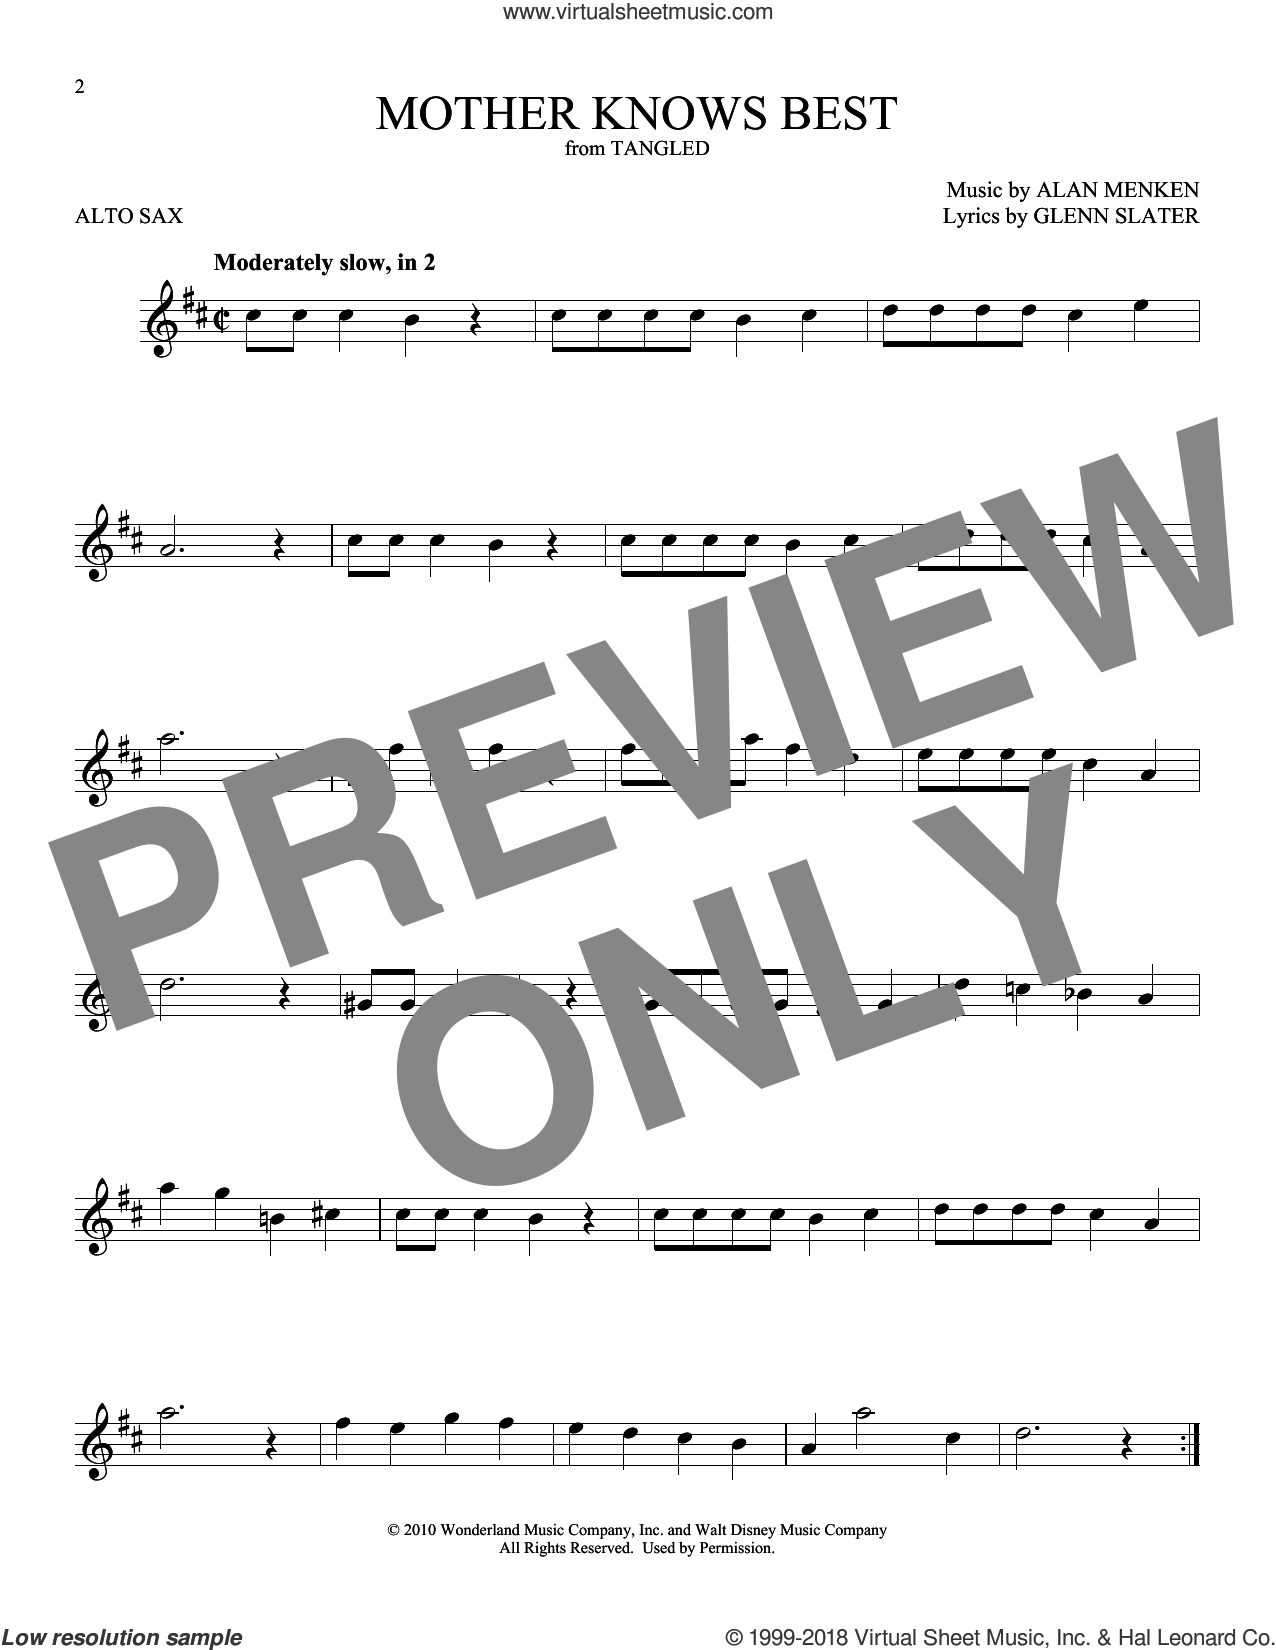 Mother Knows Best sheet music for alto saxophone solo by Alan Menken and Glenn Slater, intermediate skill level